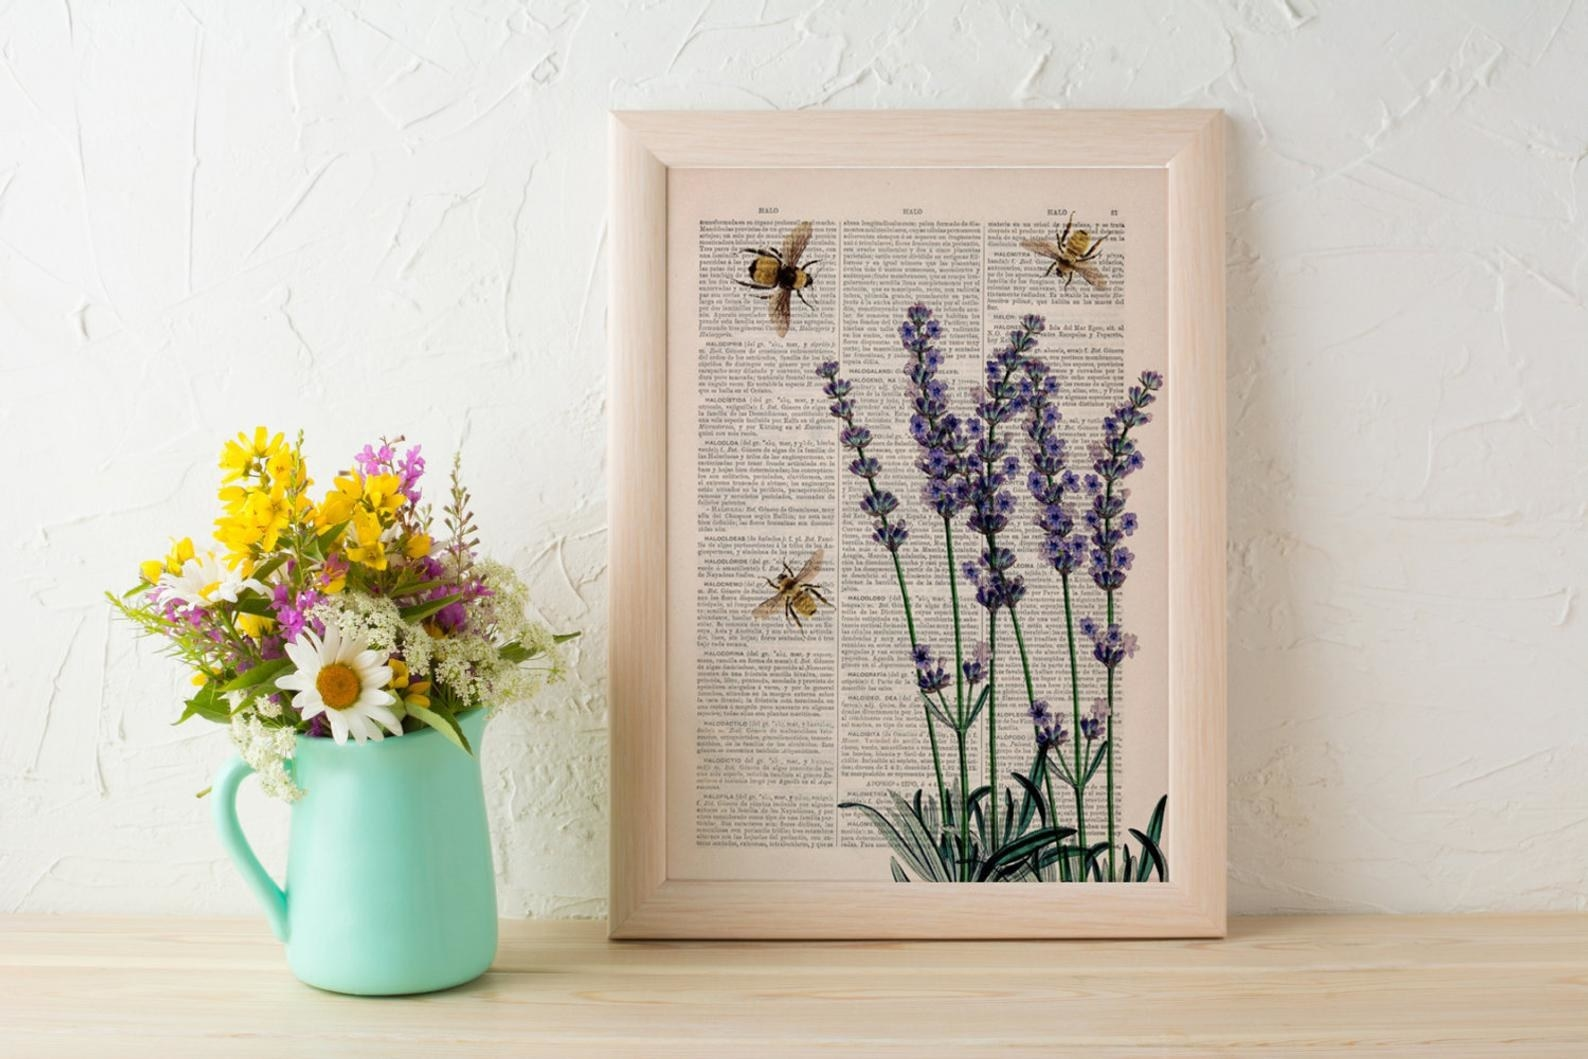 Vintage dictionary book page with print of bees and lavender